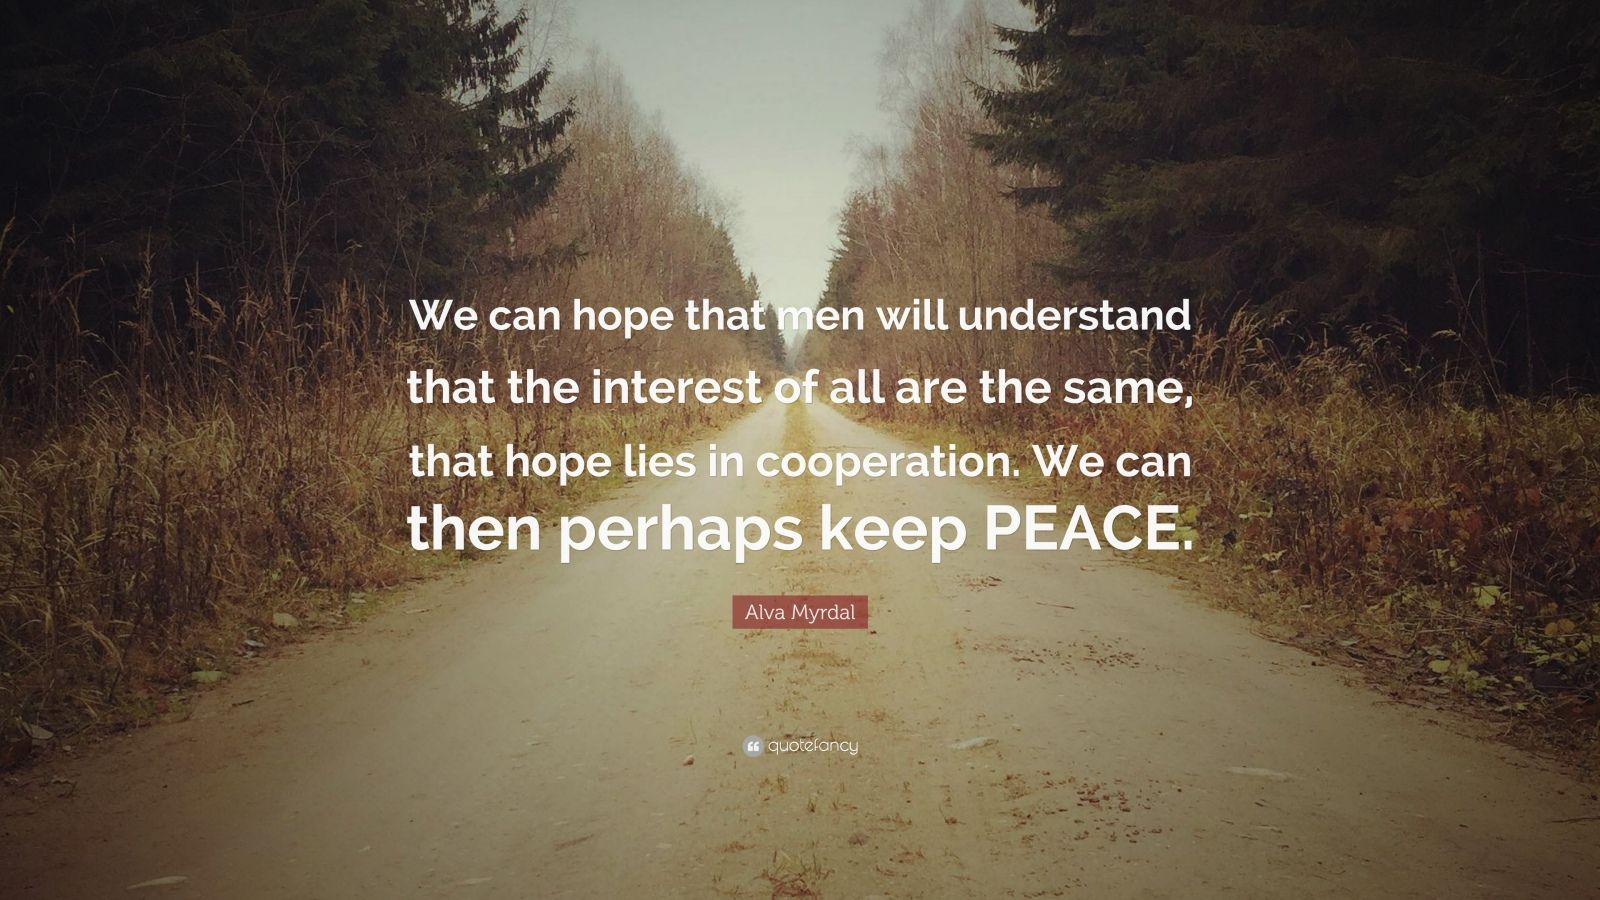 Alva Myrdal Quote We Can Hope That Men Will Understand That The Interest Of All Are The Same That Hope Lies In Cooperation We Can Then P 10 Wallpapers Quotefancy